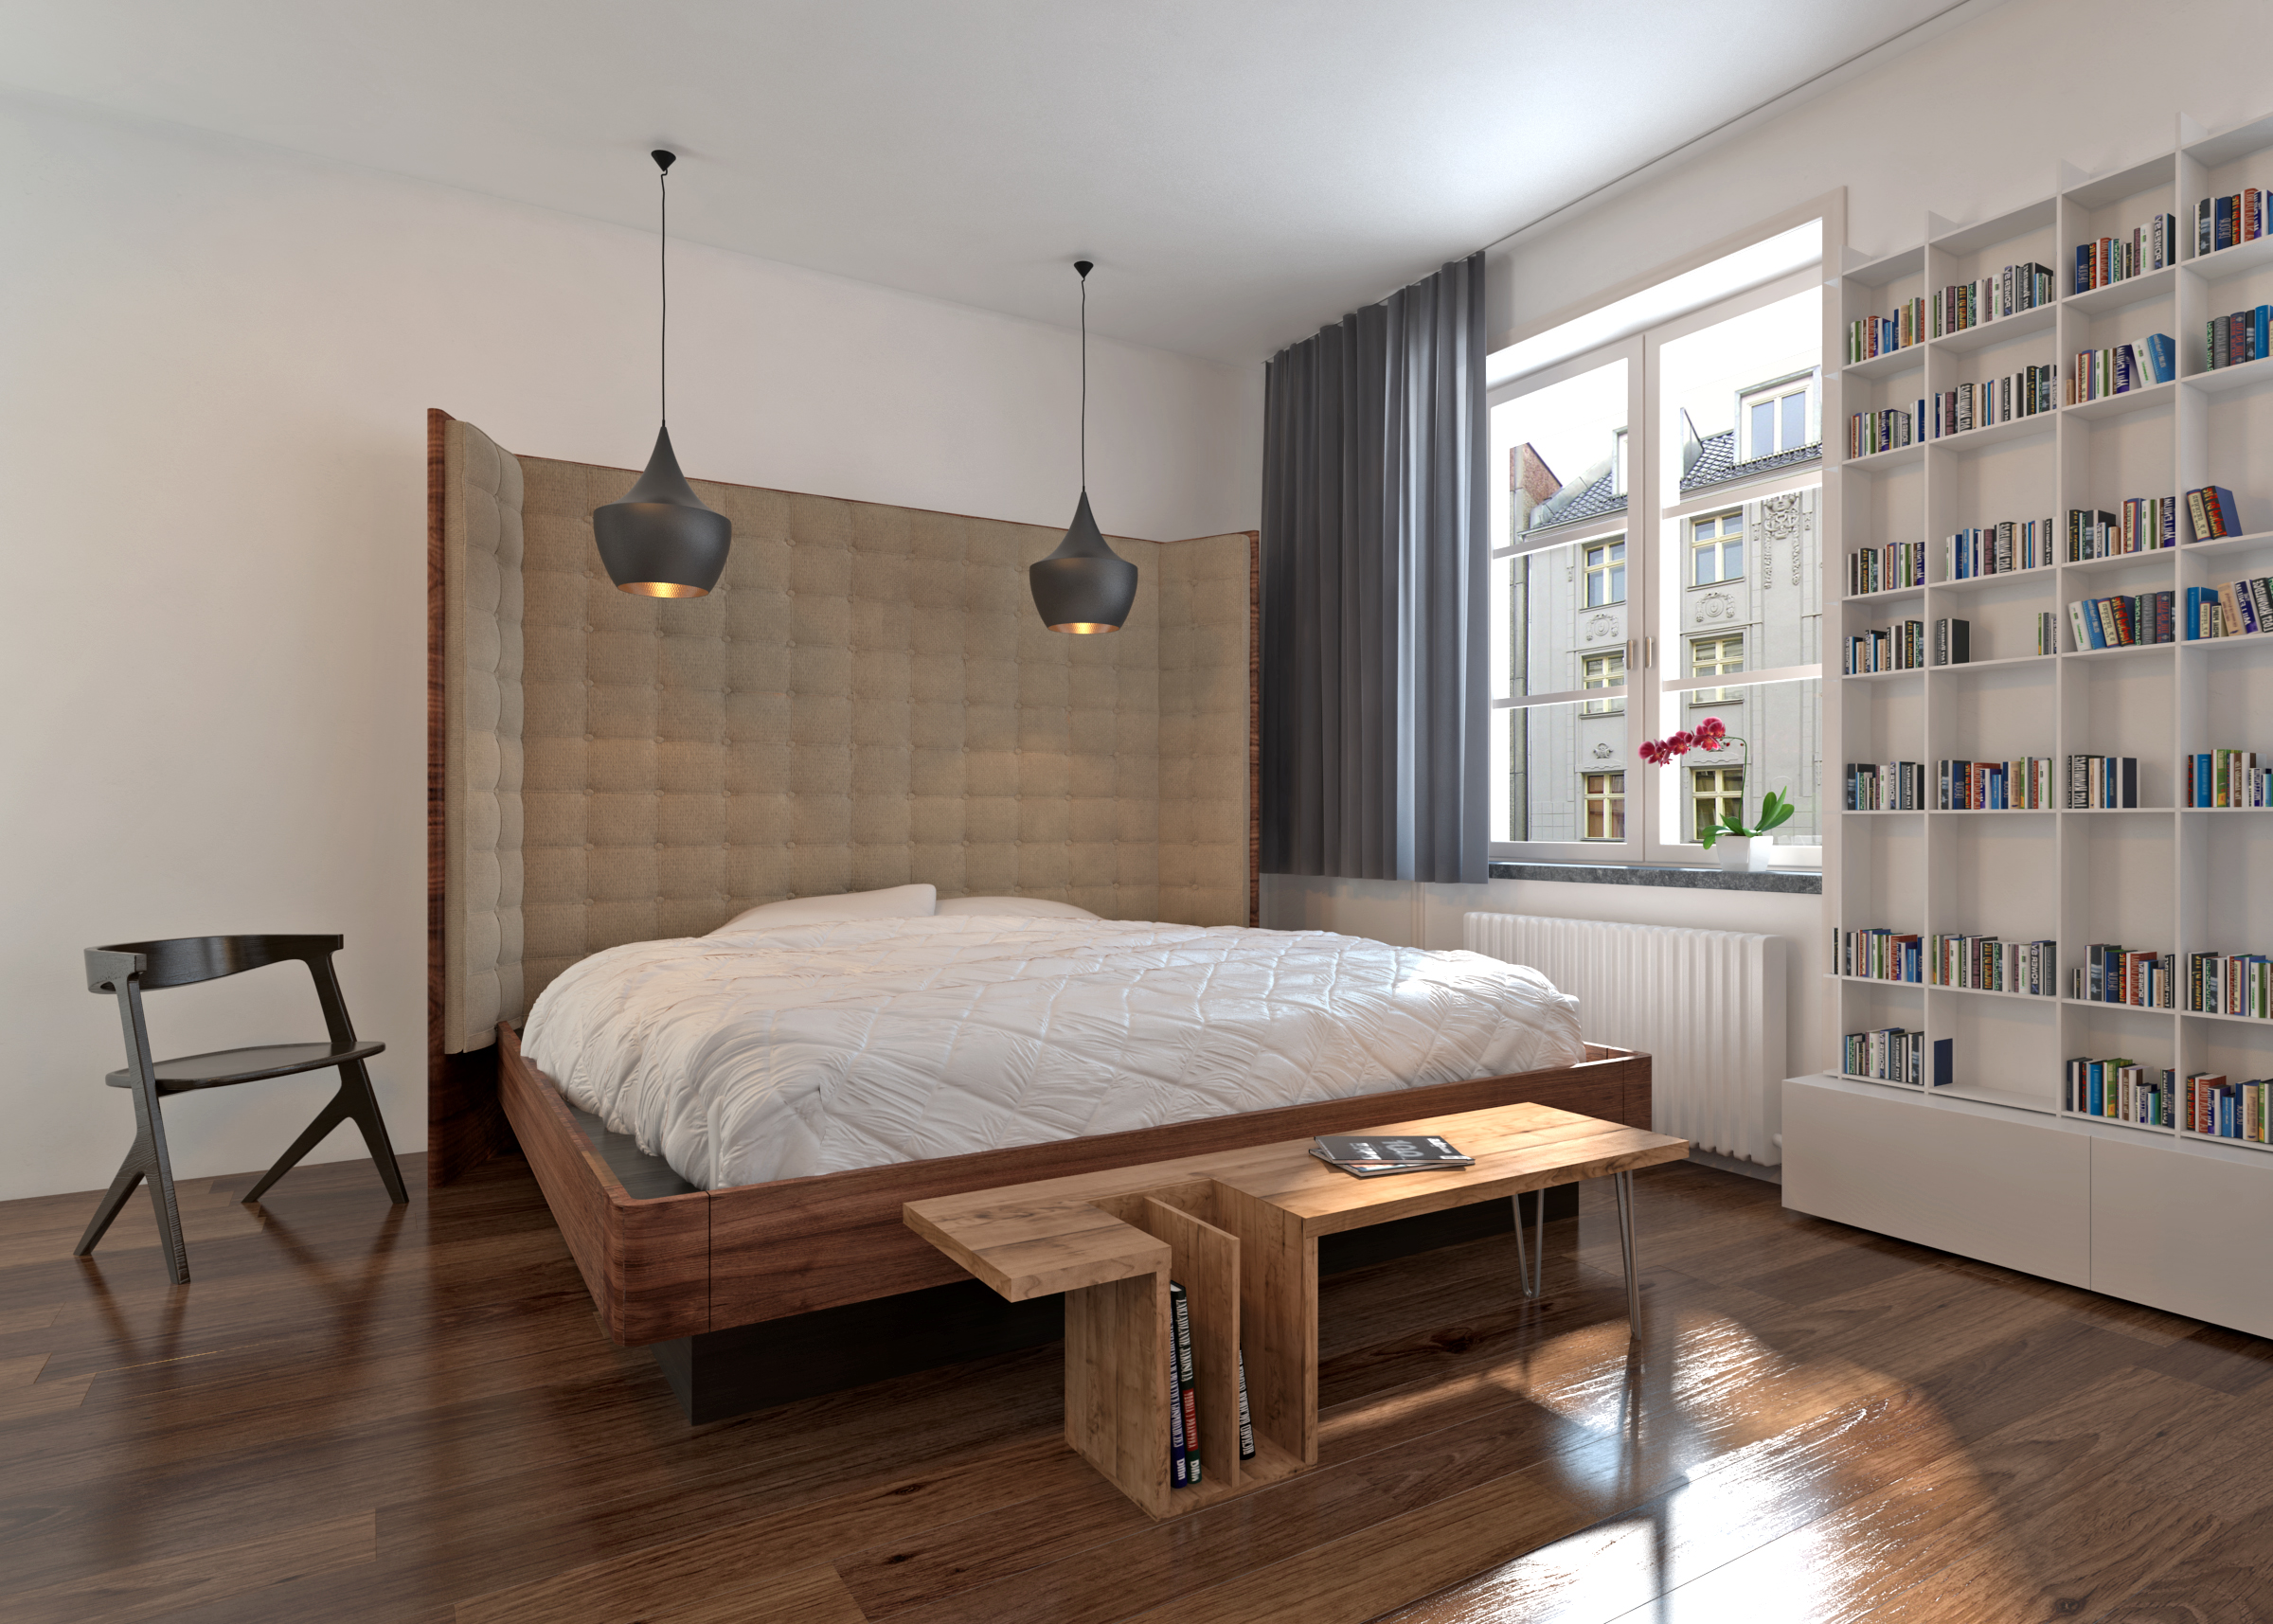 EhoEho_Walnut_Bed_04.jpg